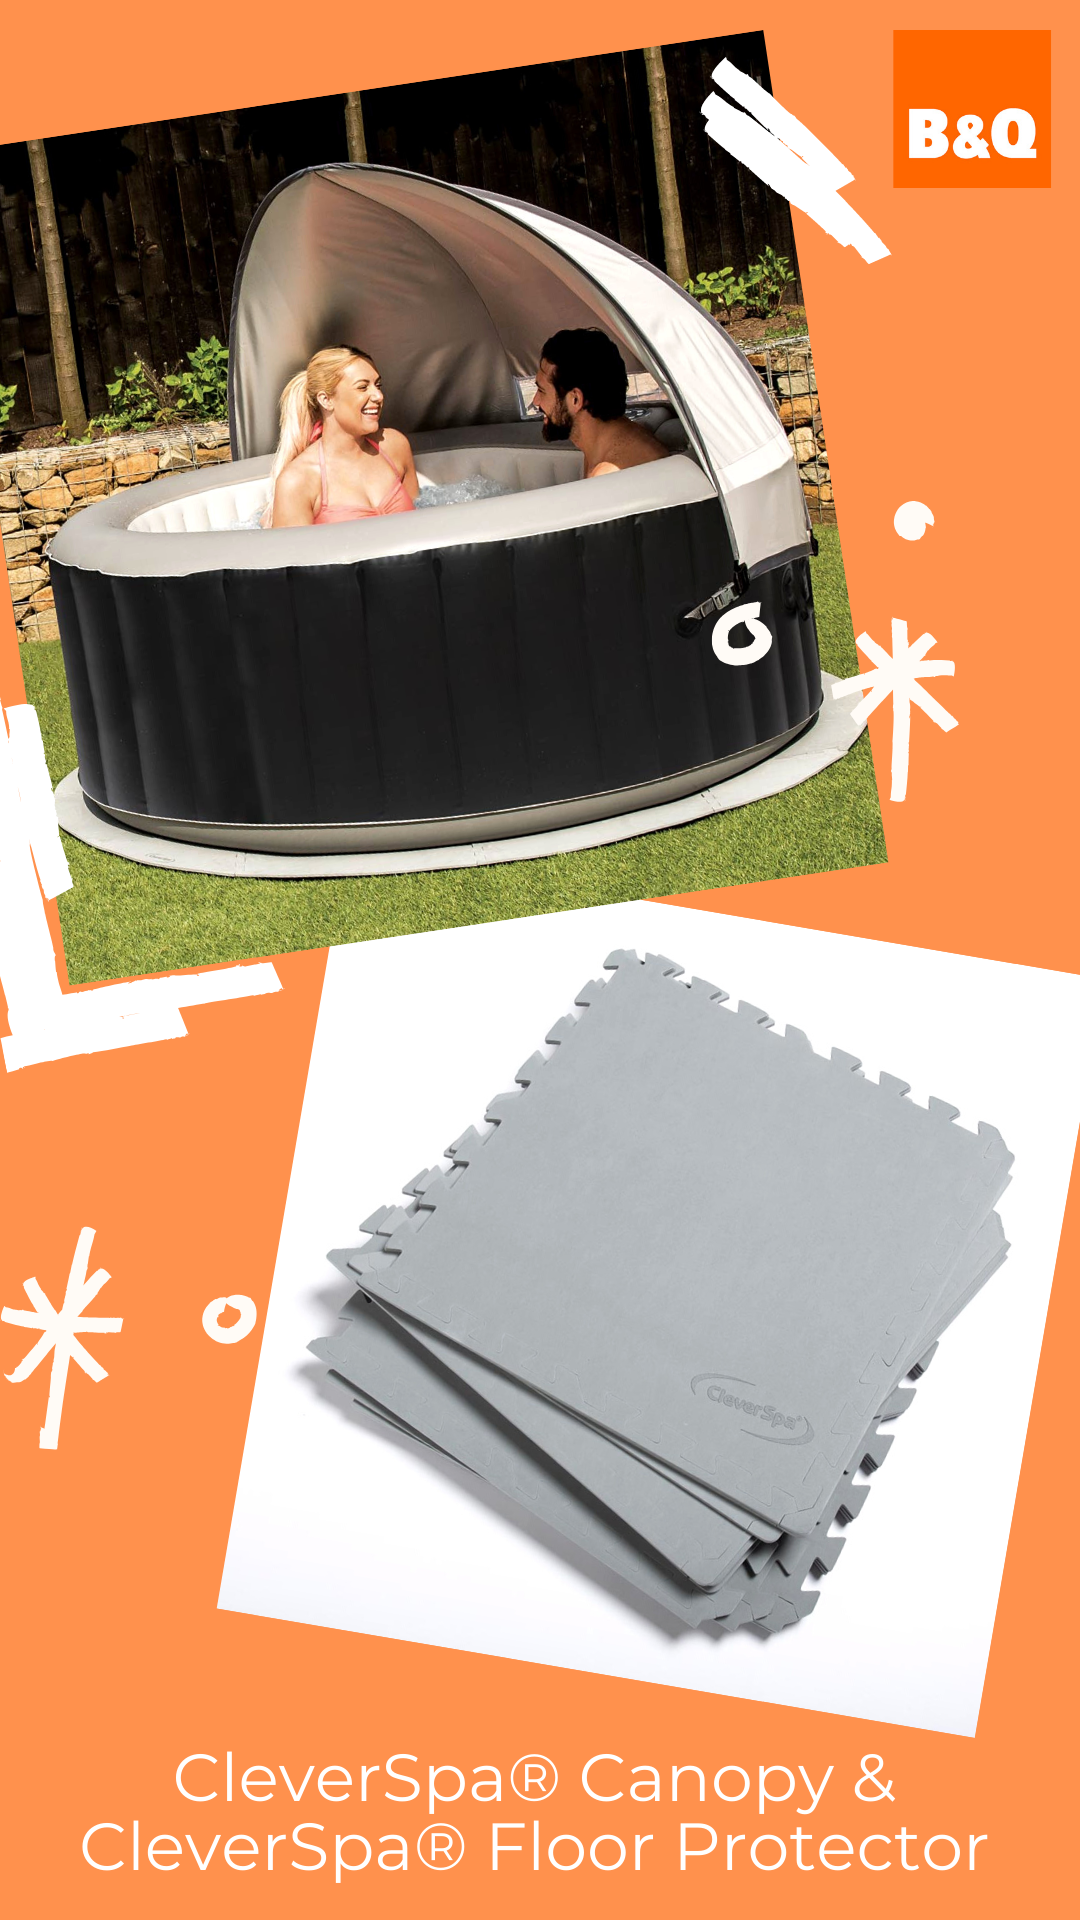 Beautiful Mates To Make Your Inflatable Hot Tub Safe Weekend Health Travel Staycation Luxuryhottub Lifestyle Summertime Garden